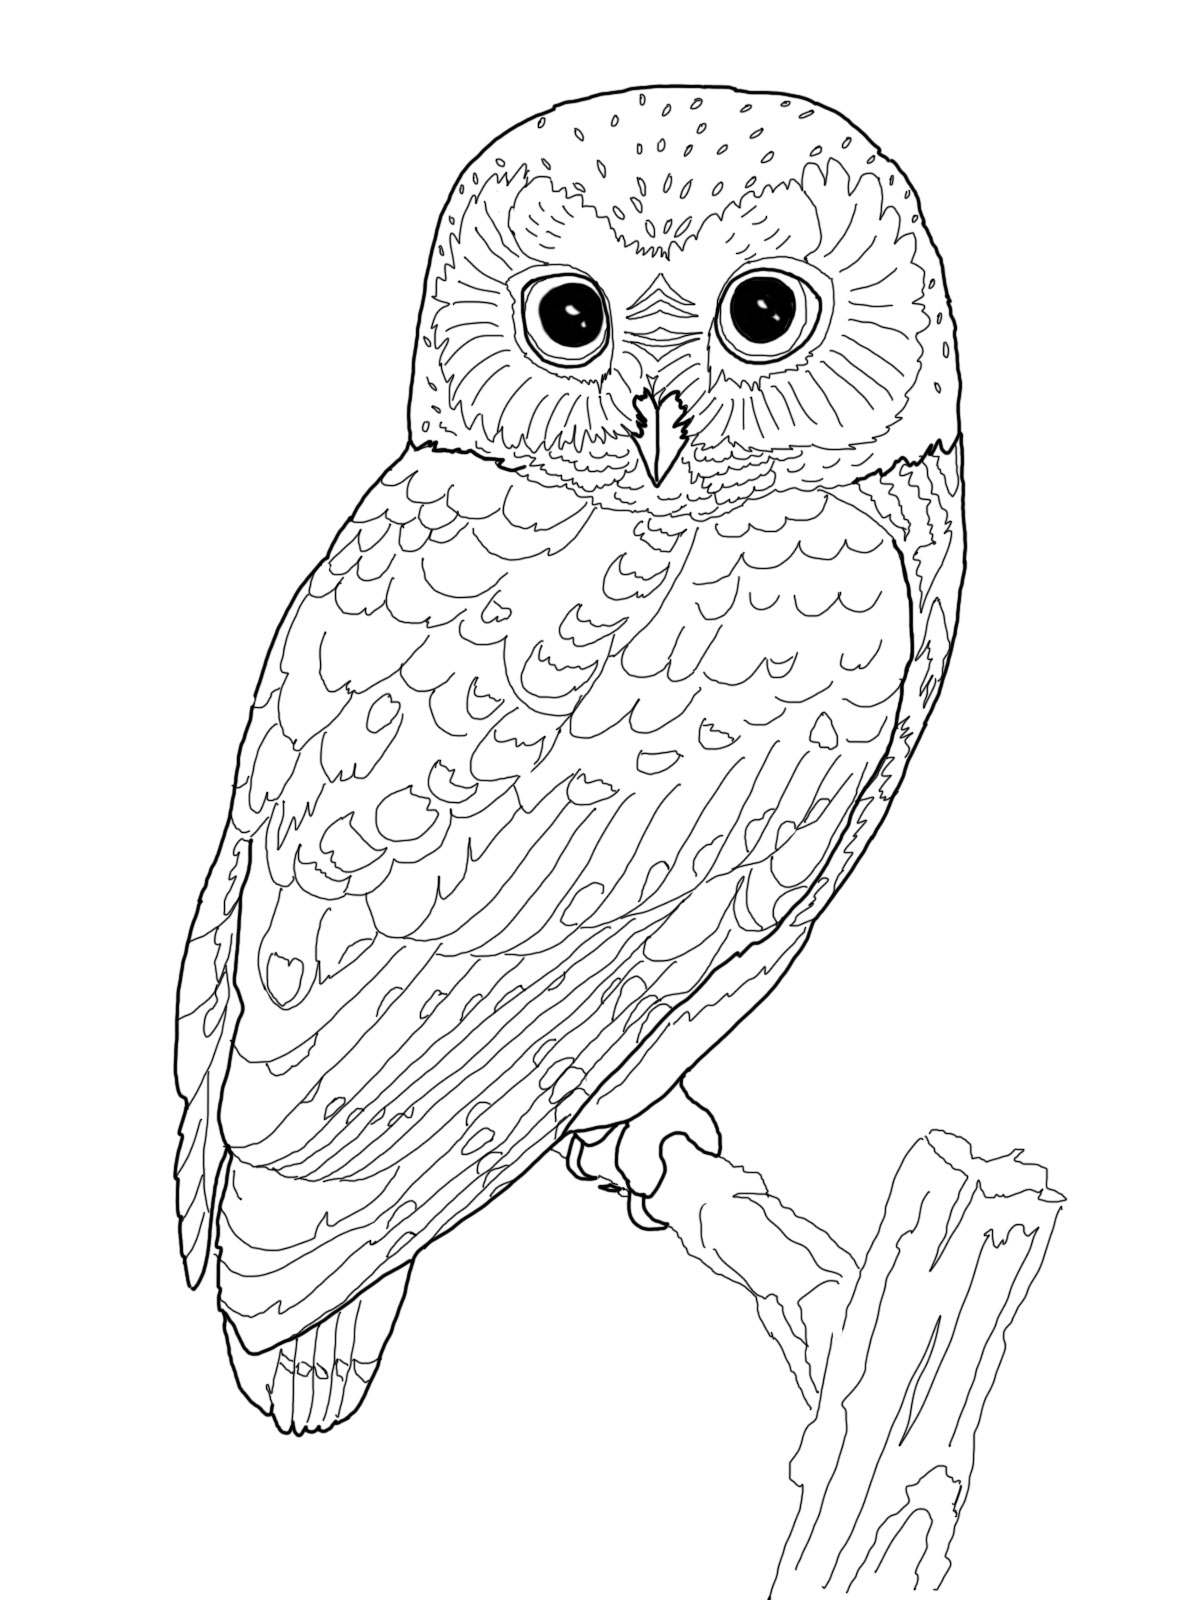 Owl Coloring Pages Pdf : Owl coloring pages